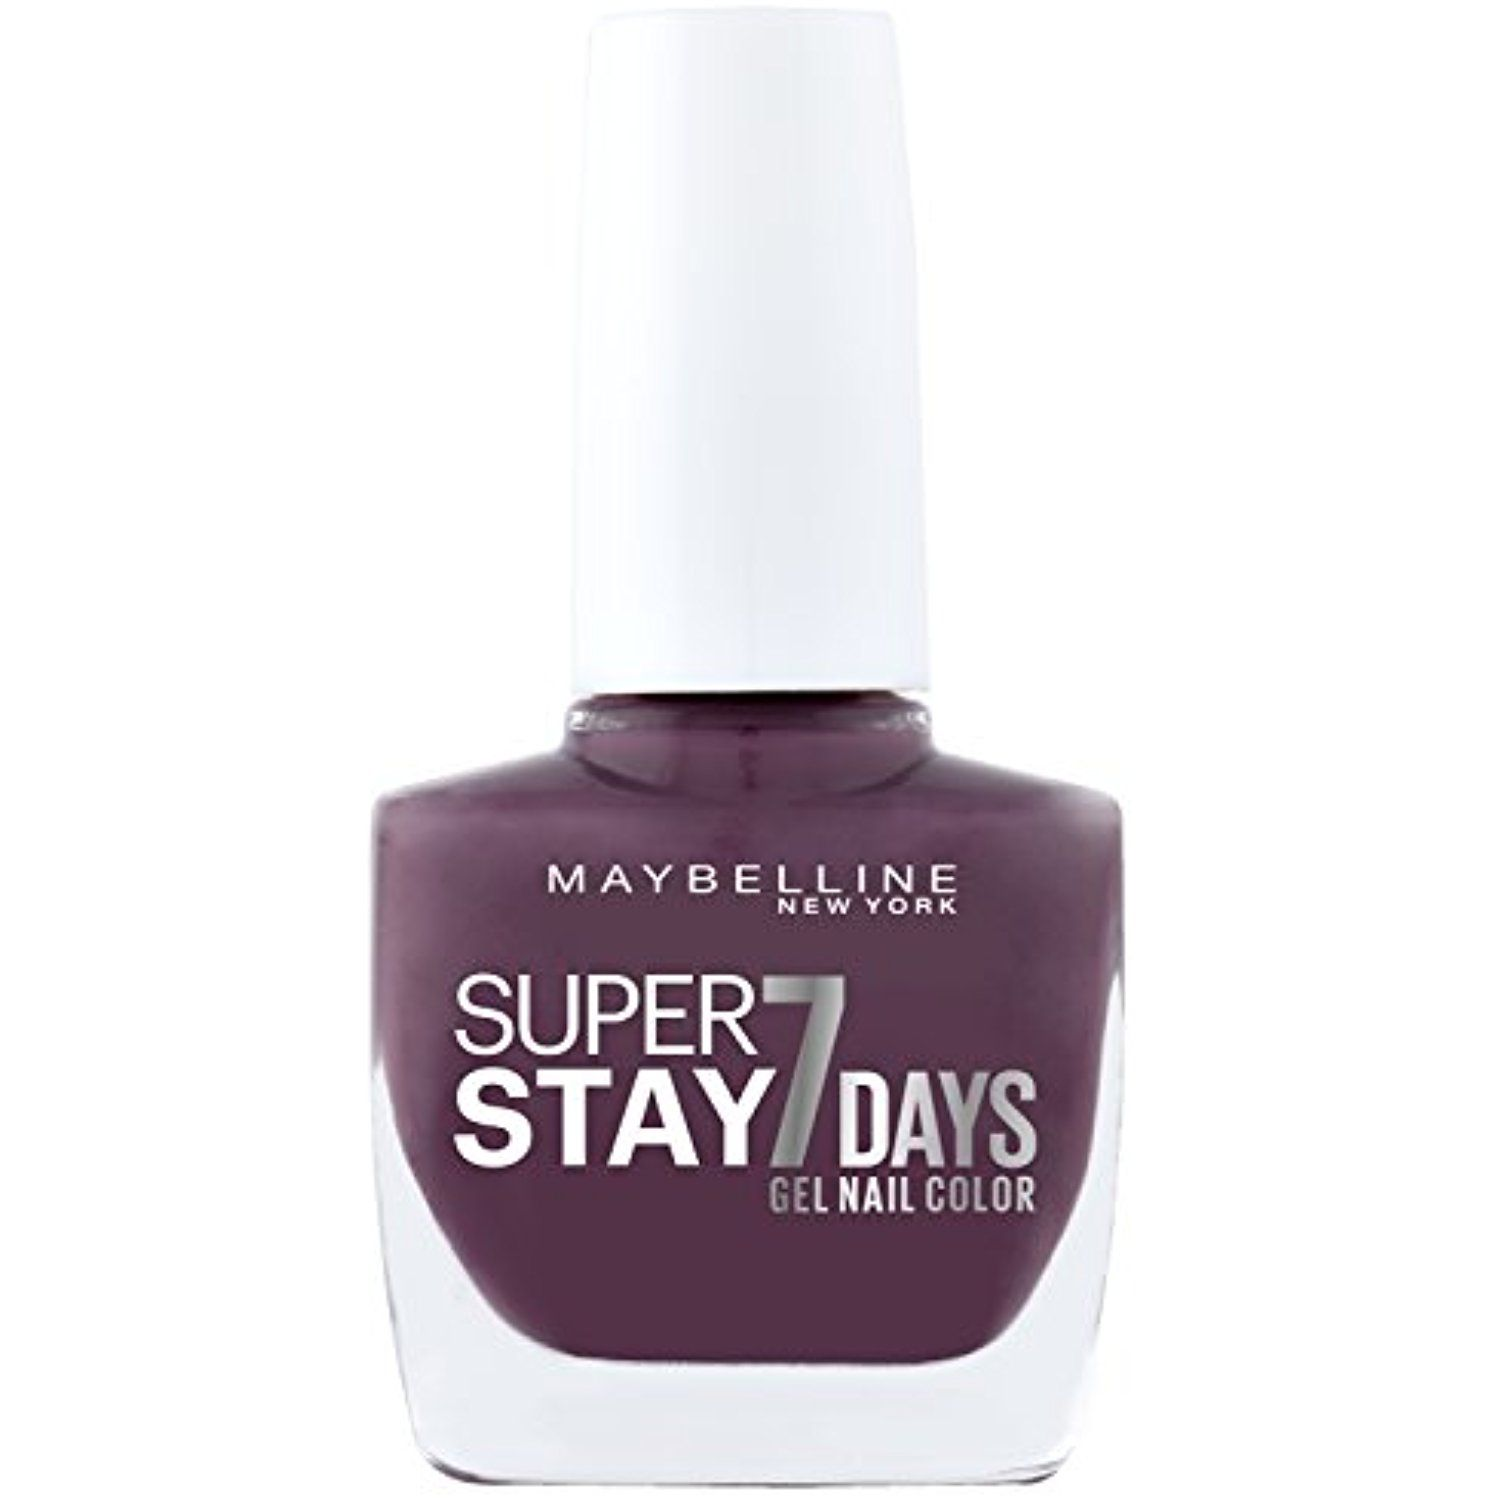 Maybelline Forever Strong Super Stay 7 Days Gel Nail Colour (Mauve ...